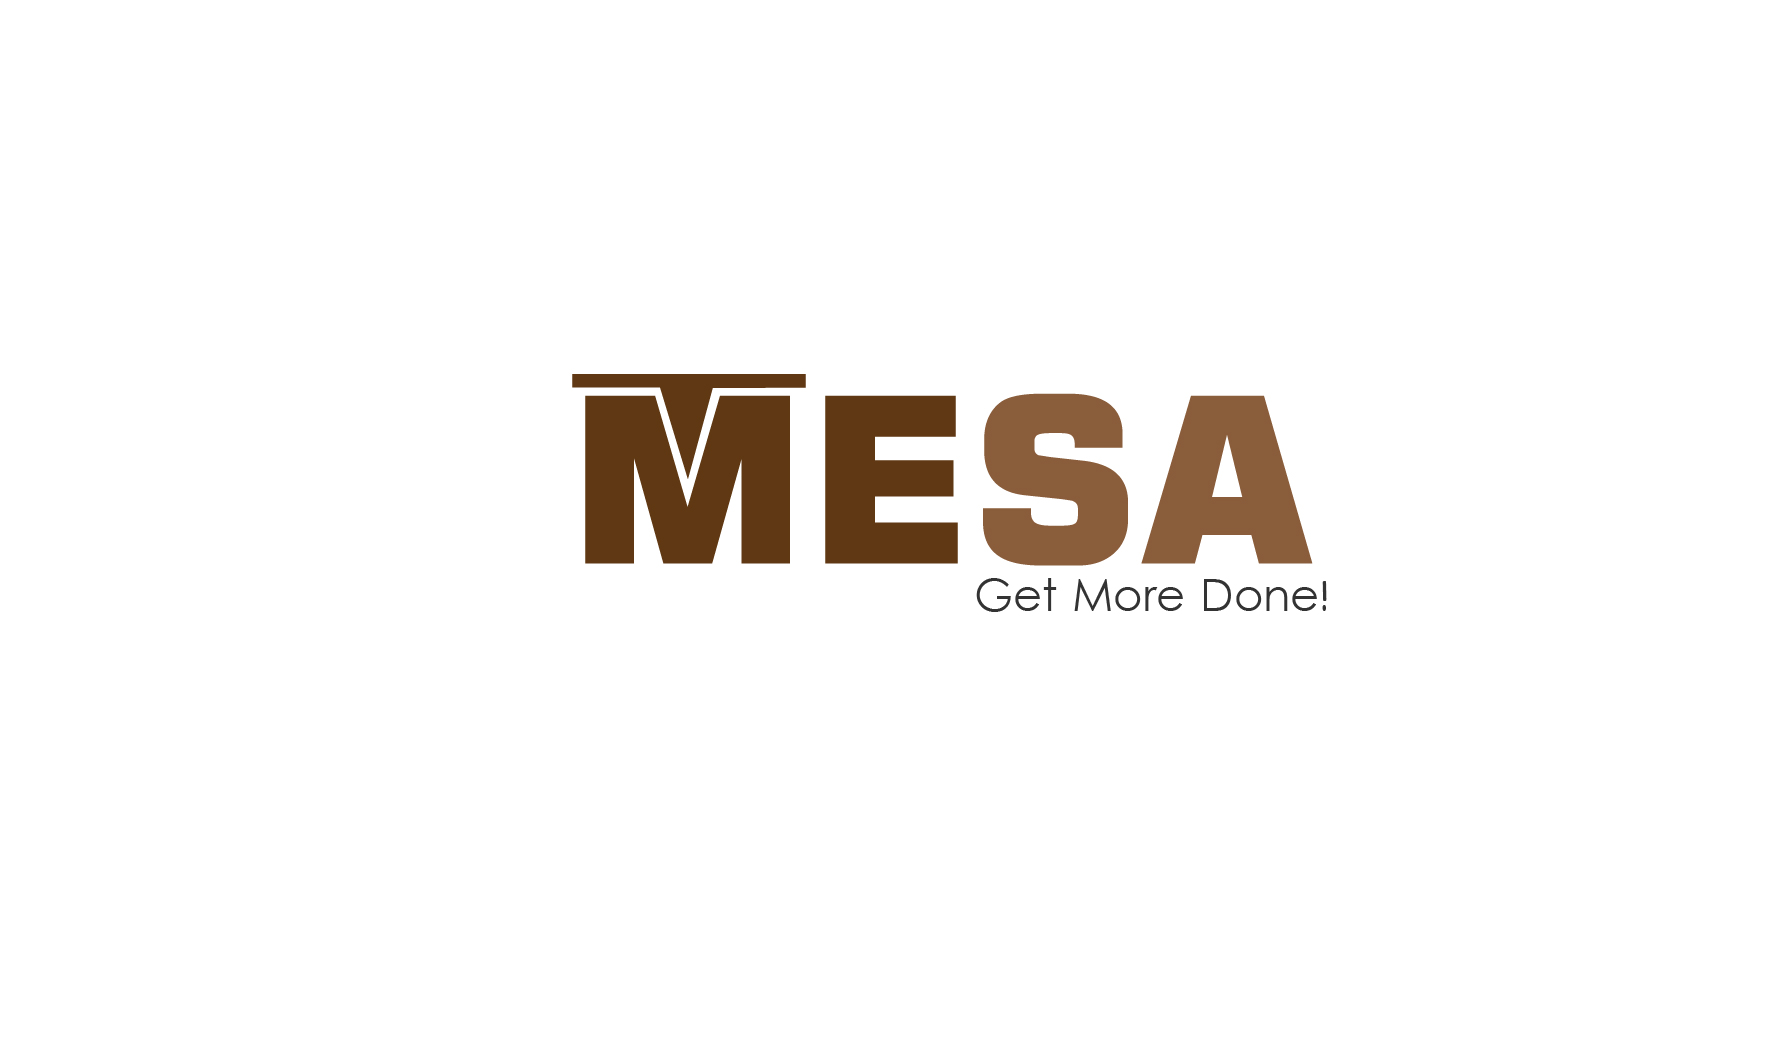 Logo Design by 3draw - Entry No. 169 in the Logo Design Contest Logo Design for Mesa.